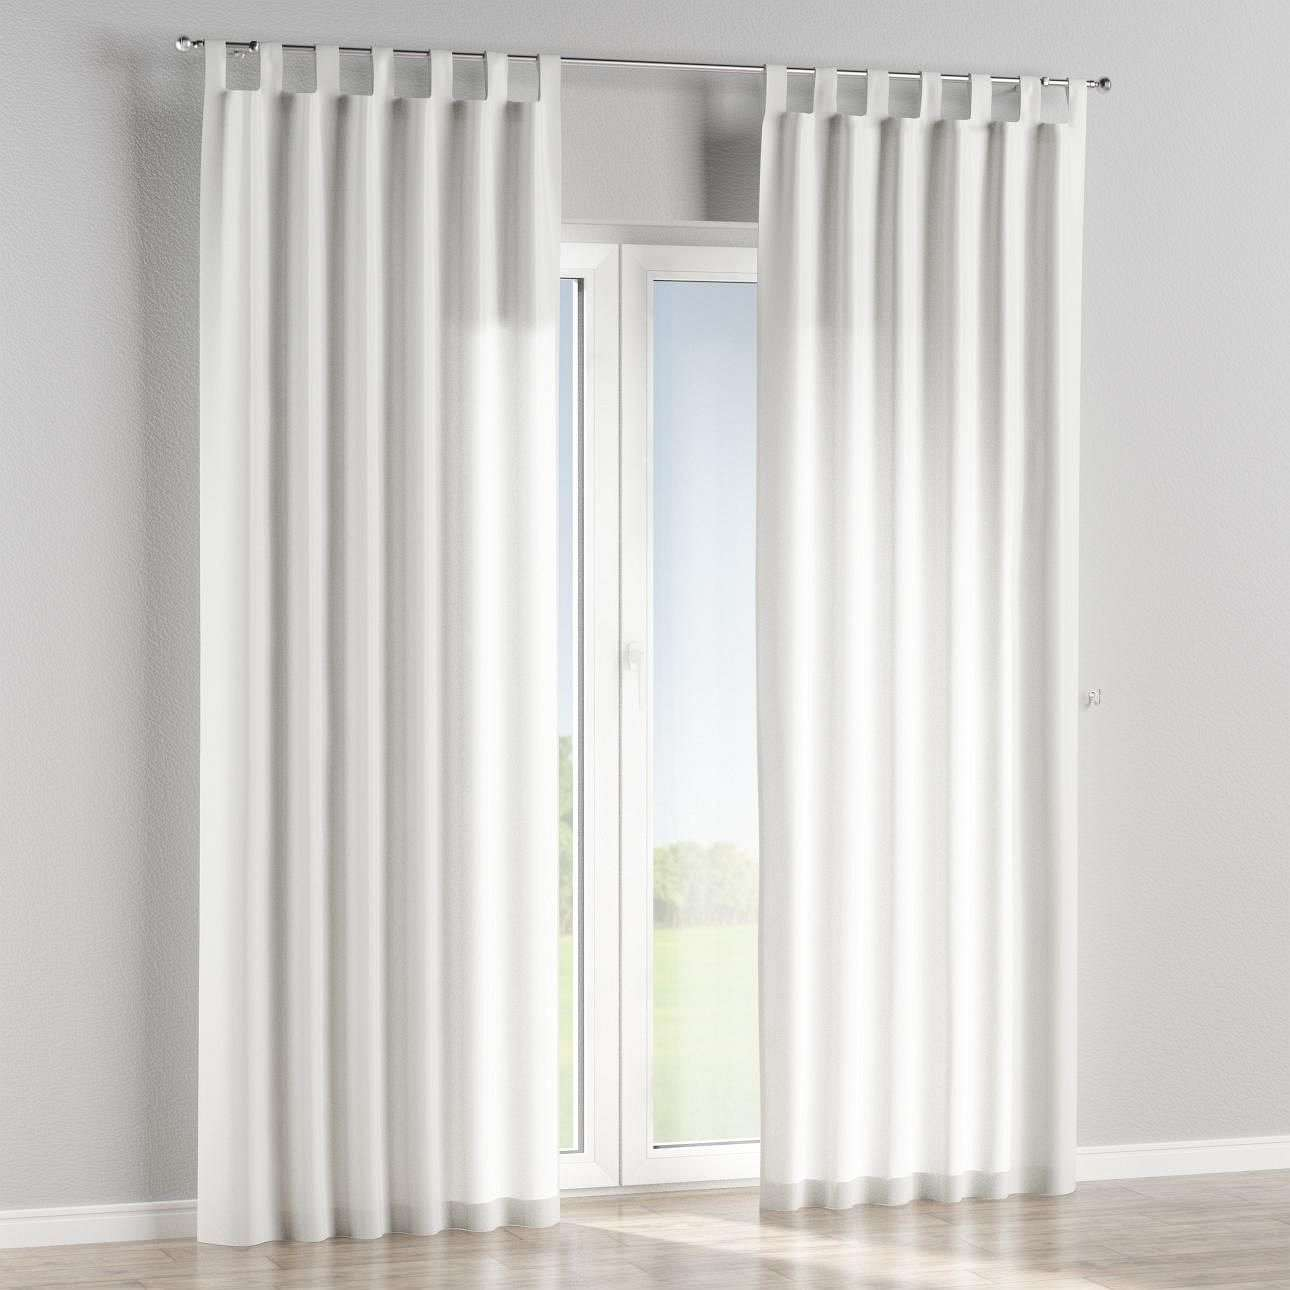 Tab top curtains in collection SALE, fabric: 130-11